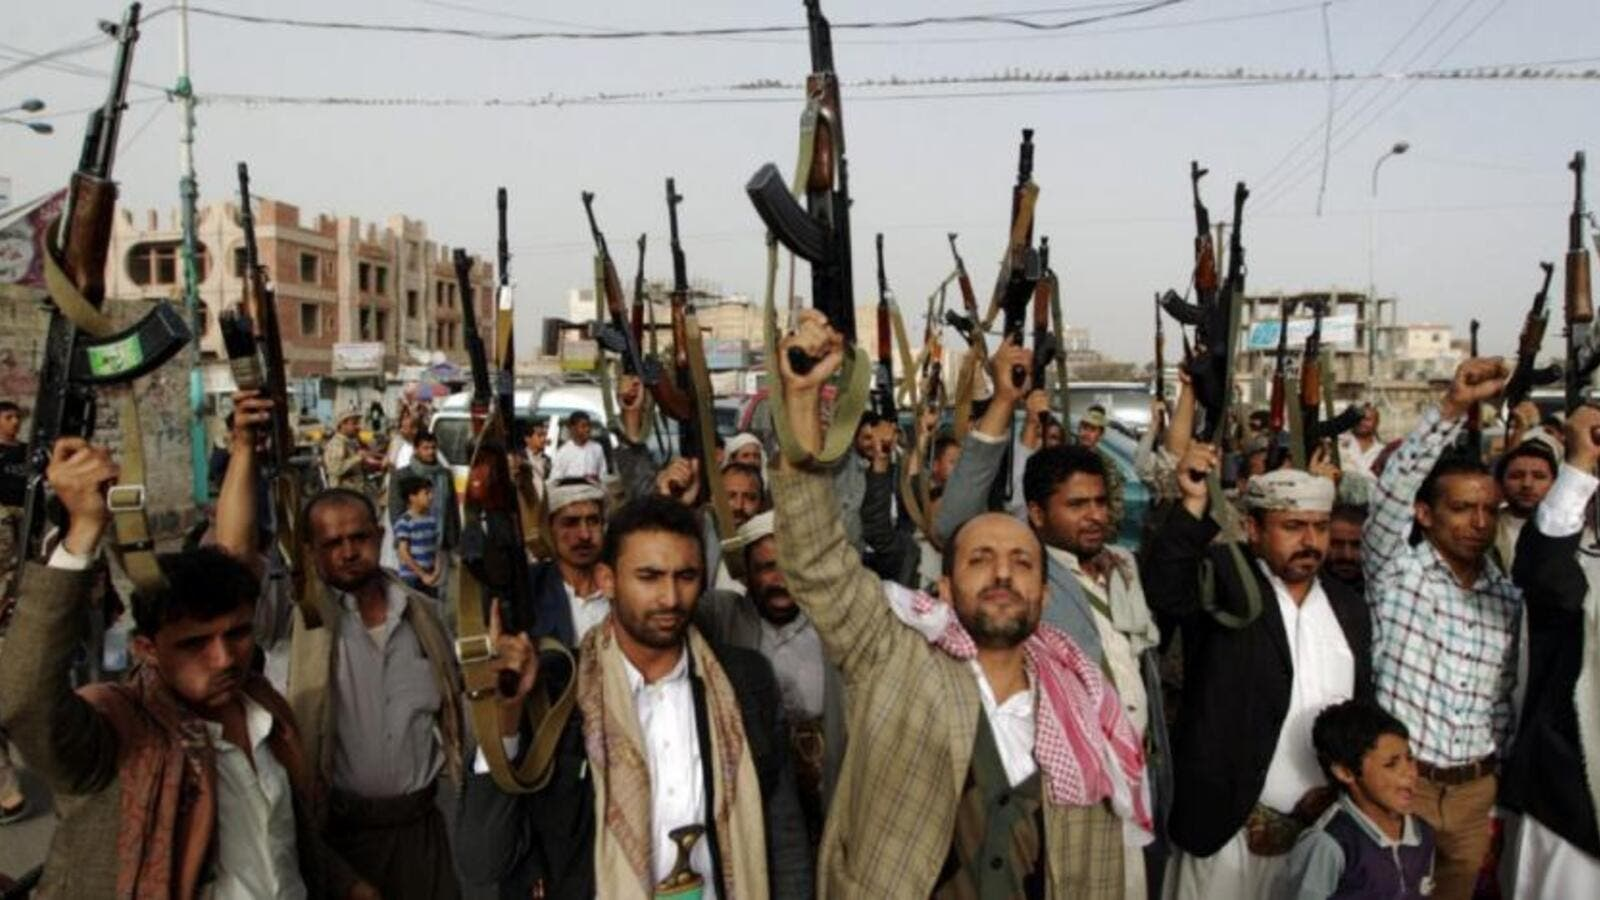 Houthi militants brandish their weapons during a rally in the Yemeni capital Sanaa. (AFP/ File Photo)